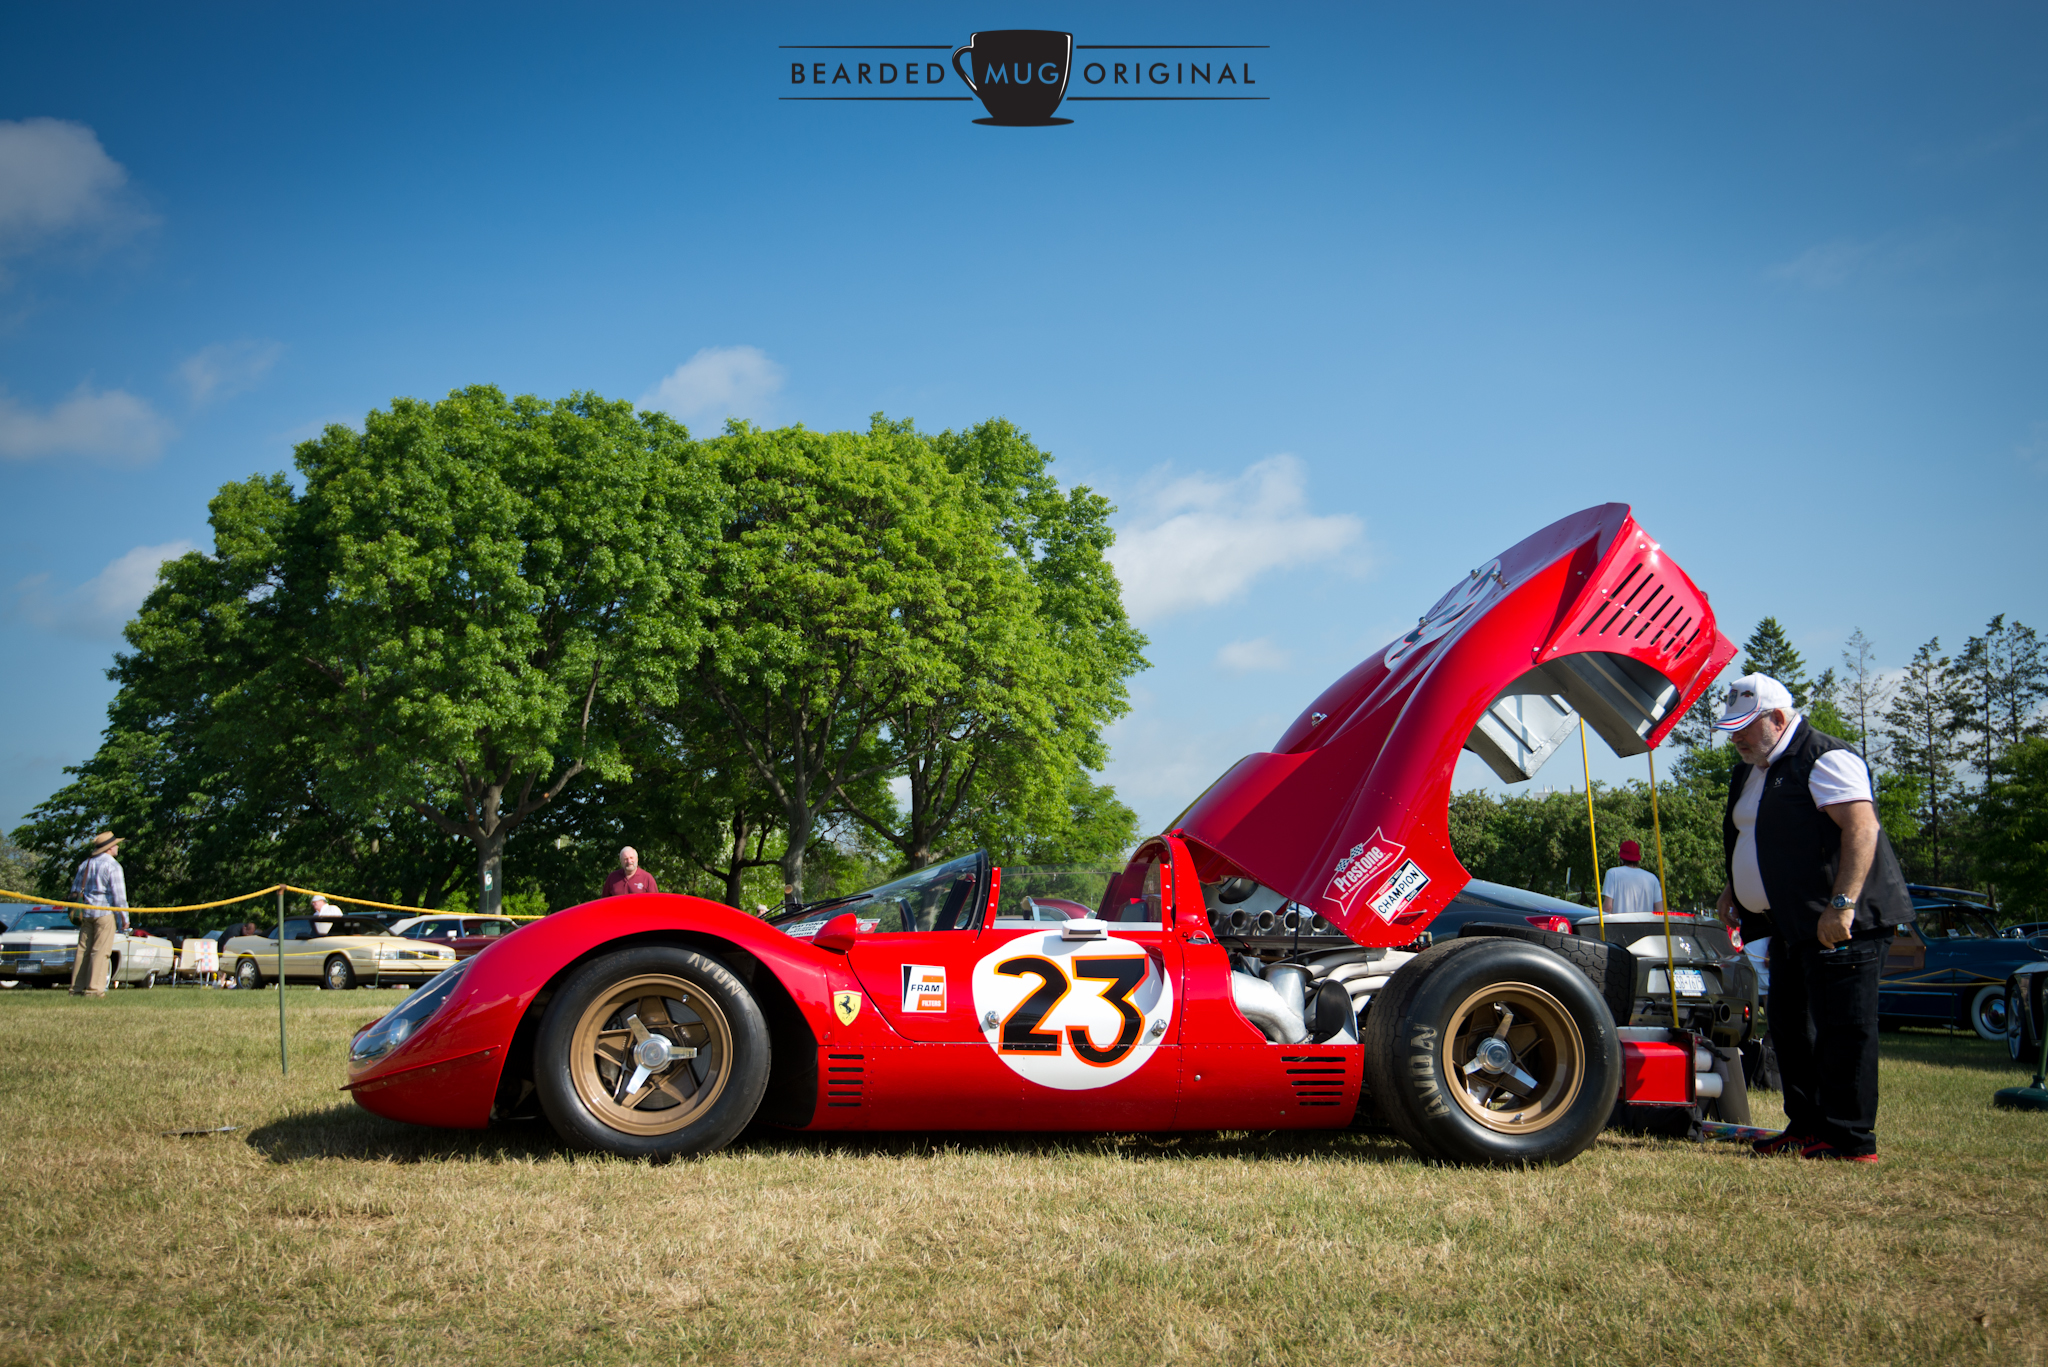 Jim Glickenhaus drove his Ferrari P3/4 from his home in nearby Rye, NY. Imagine being a kid and having this racecar pull up next to your parent's minivan at a traffic light. Unreal.